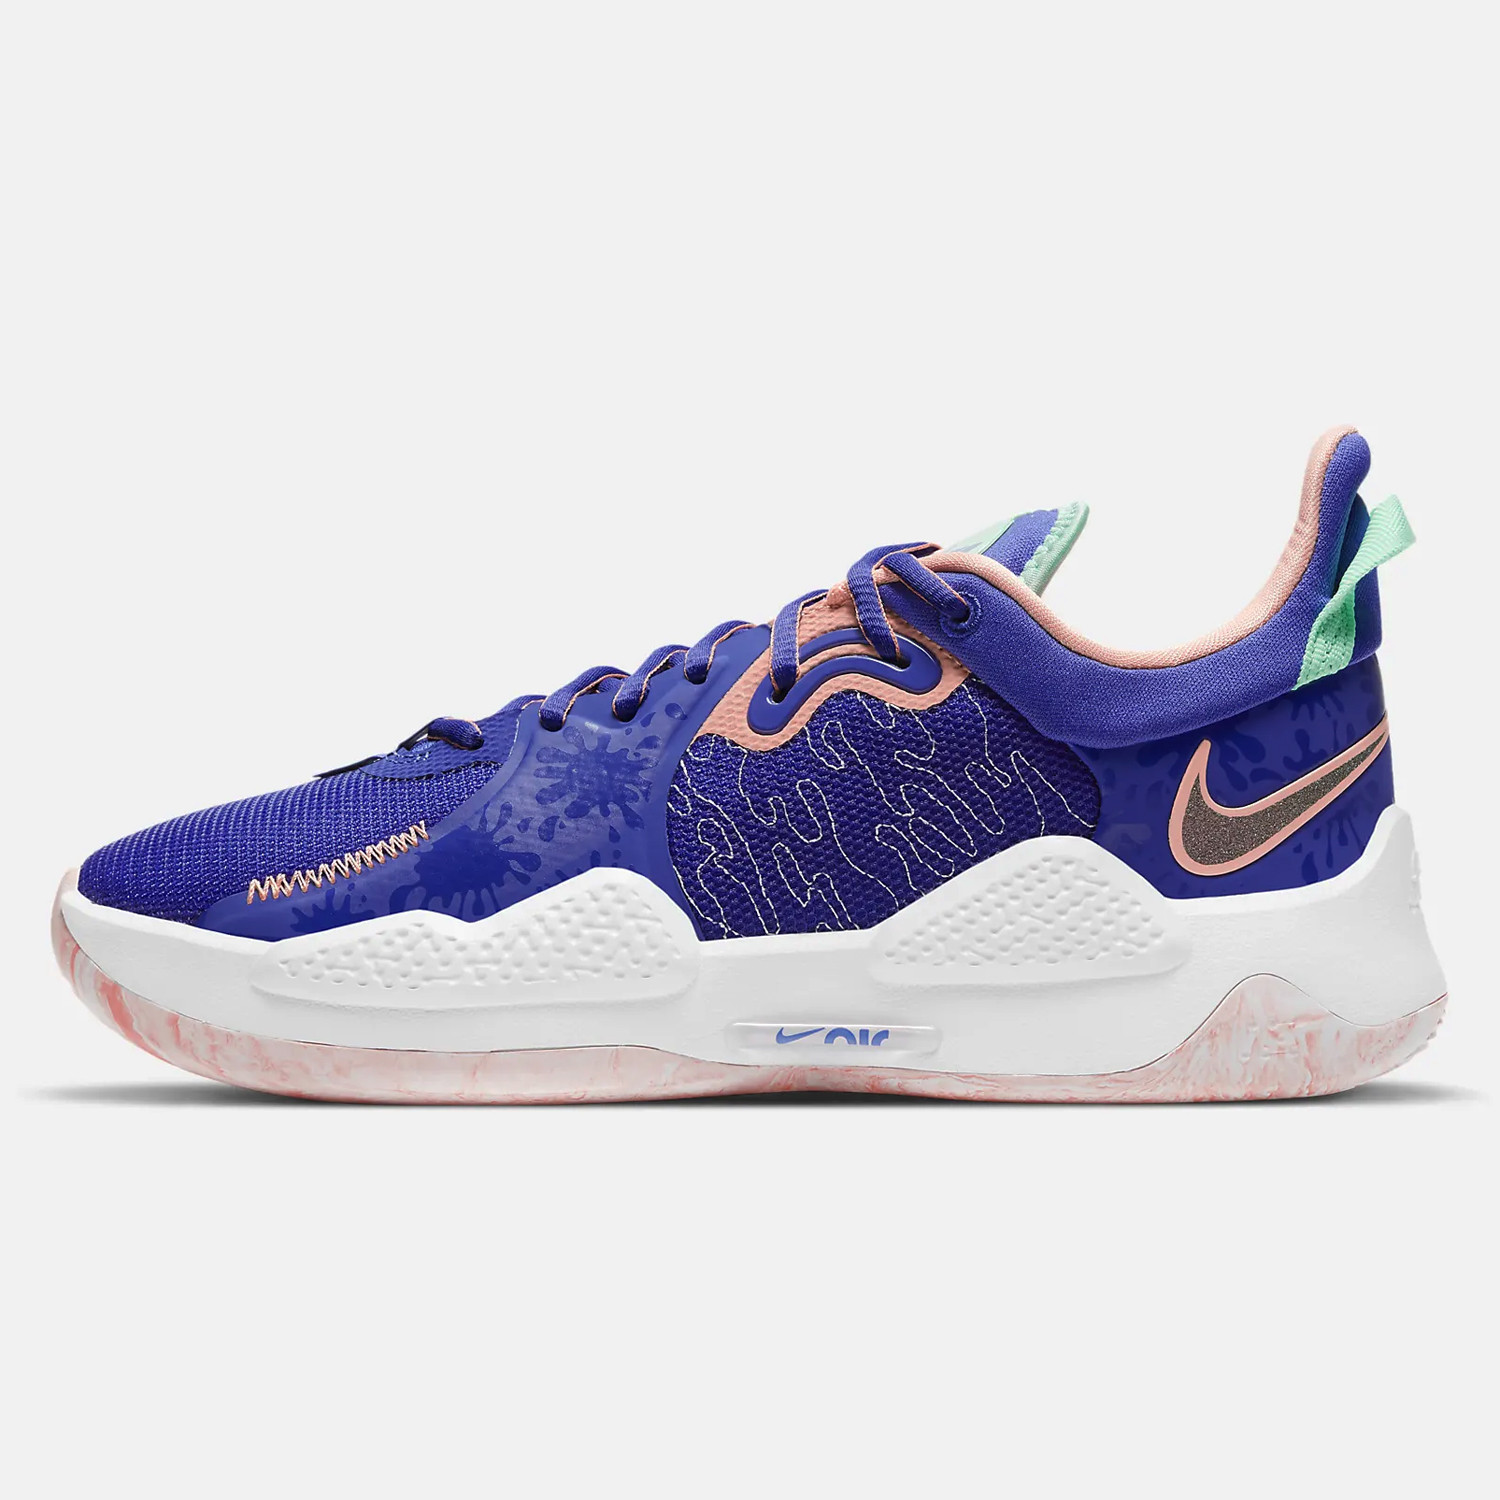 Nike Pg 5 Basketball Shoes (9000069553_50295)